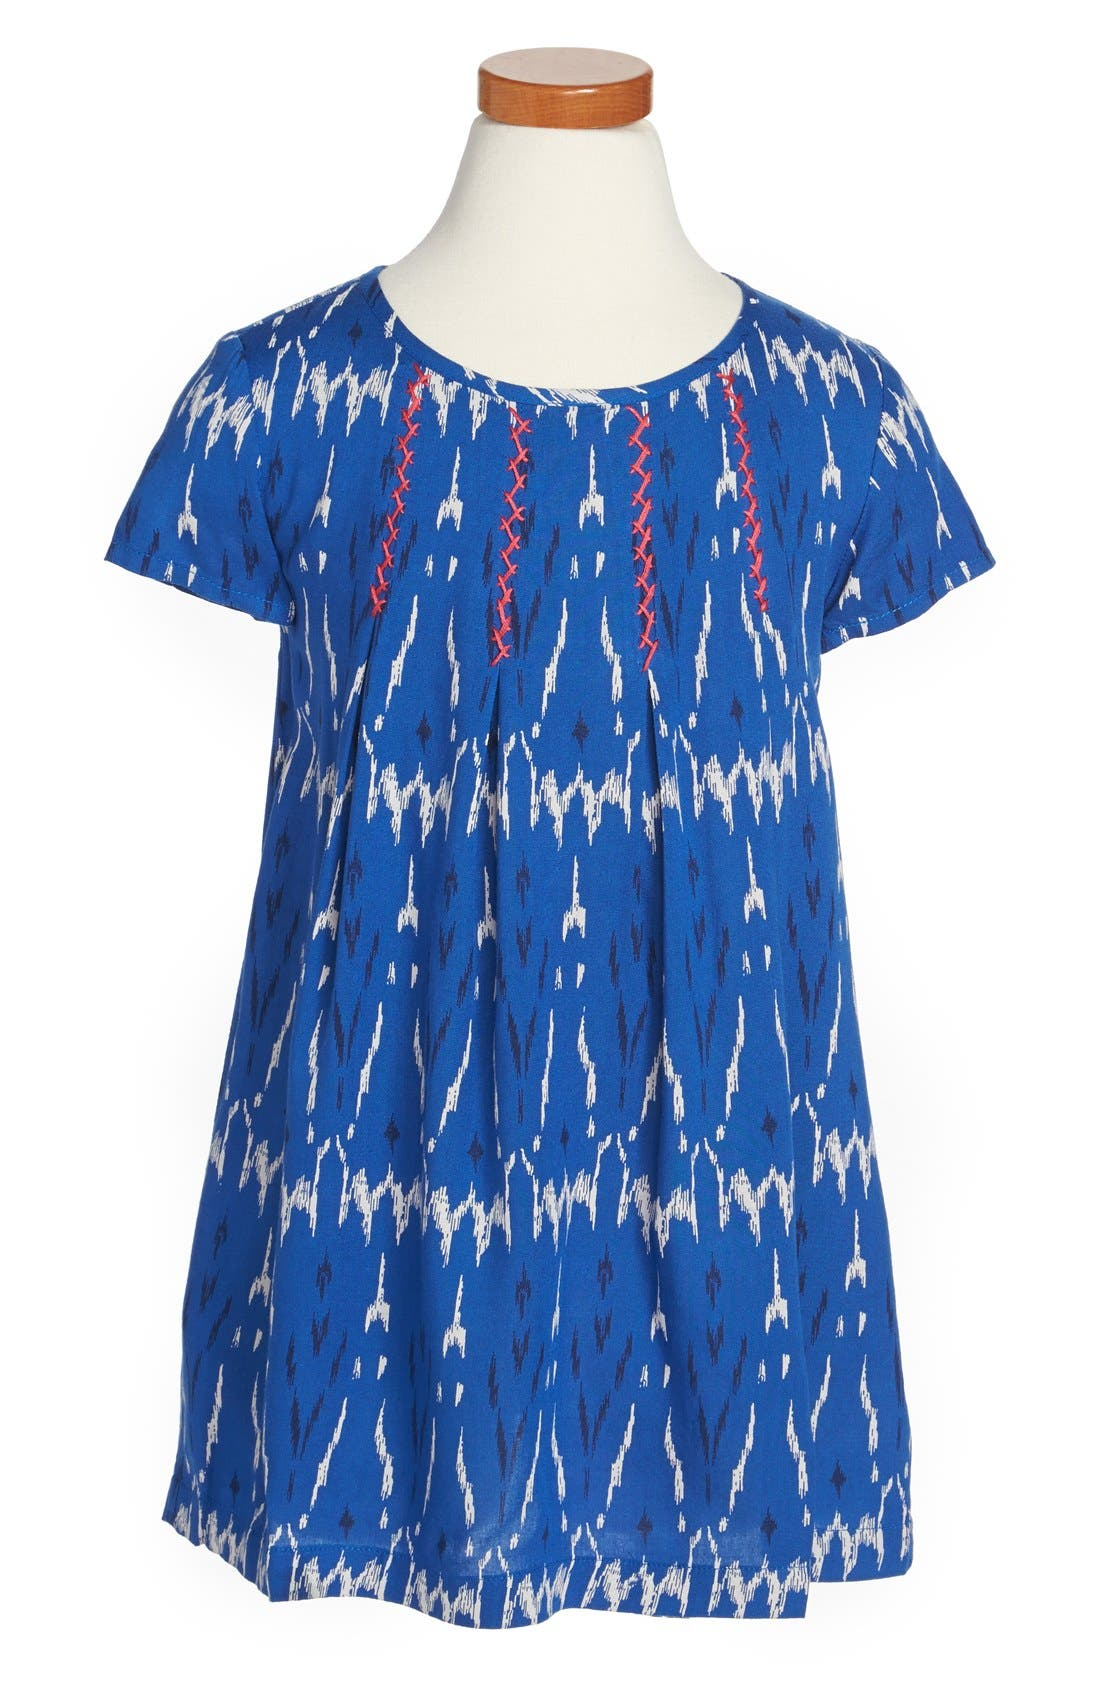 Alternate Image 1 Selected - Tucker + Tate 'Patricia' Pleated Print Dress (Toddler Girls)